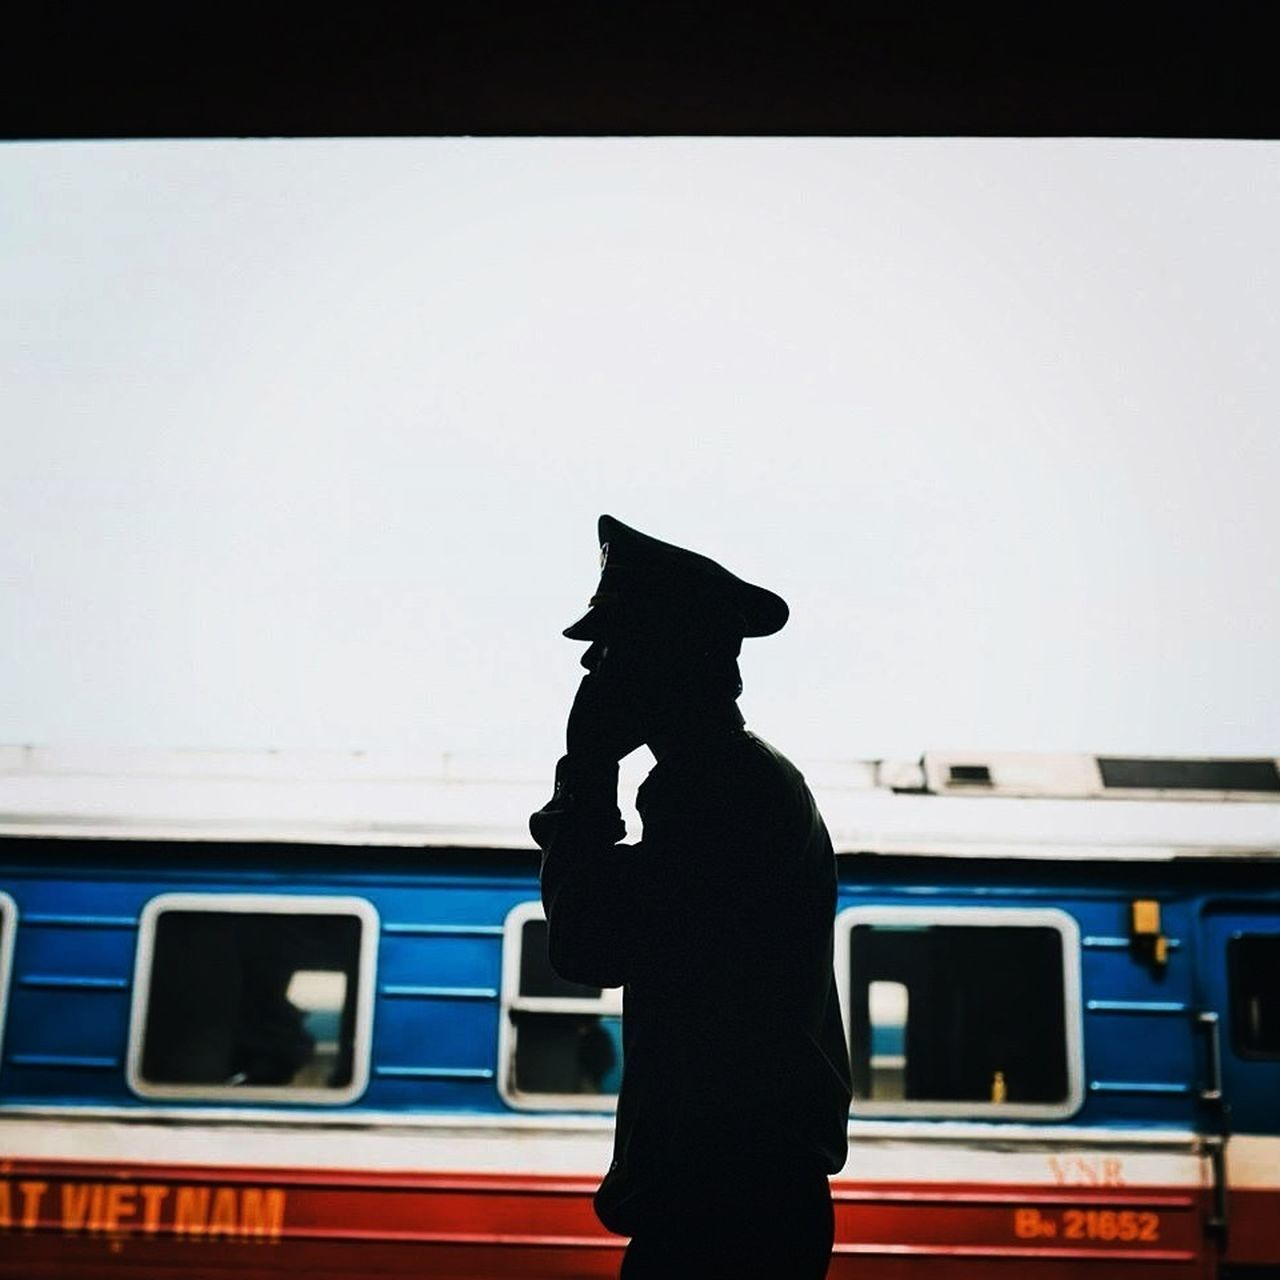 Silhouette transport conductor using phone with train in background